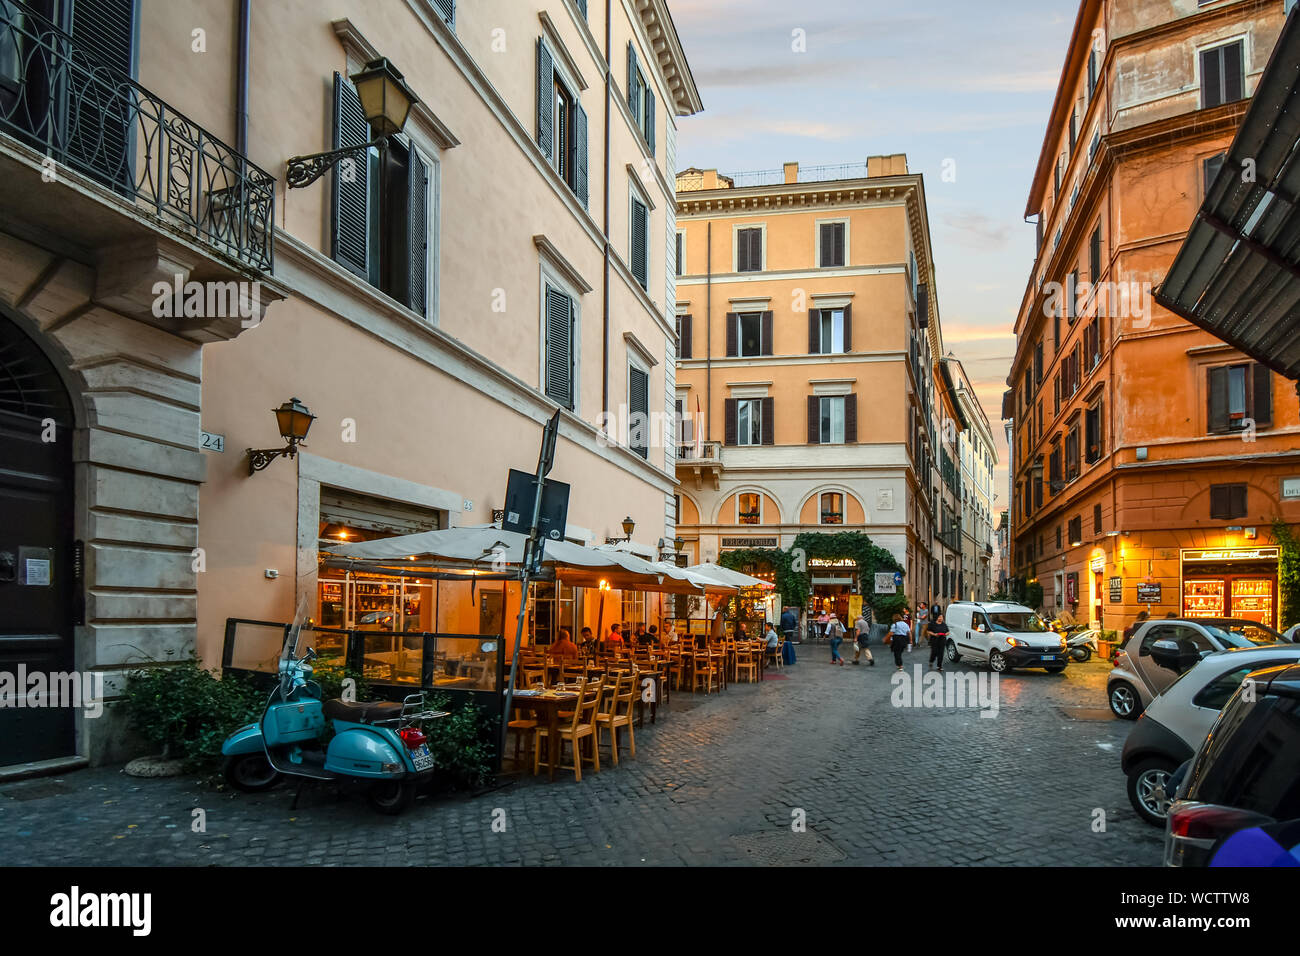 Dusk in the historic center of Rome Italy as tourists and locals enjoy early evening at the sidewalk cafes and shops. Stock Photo